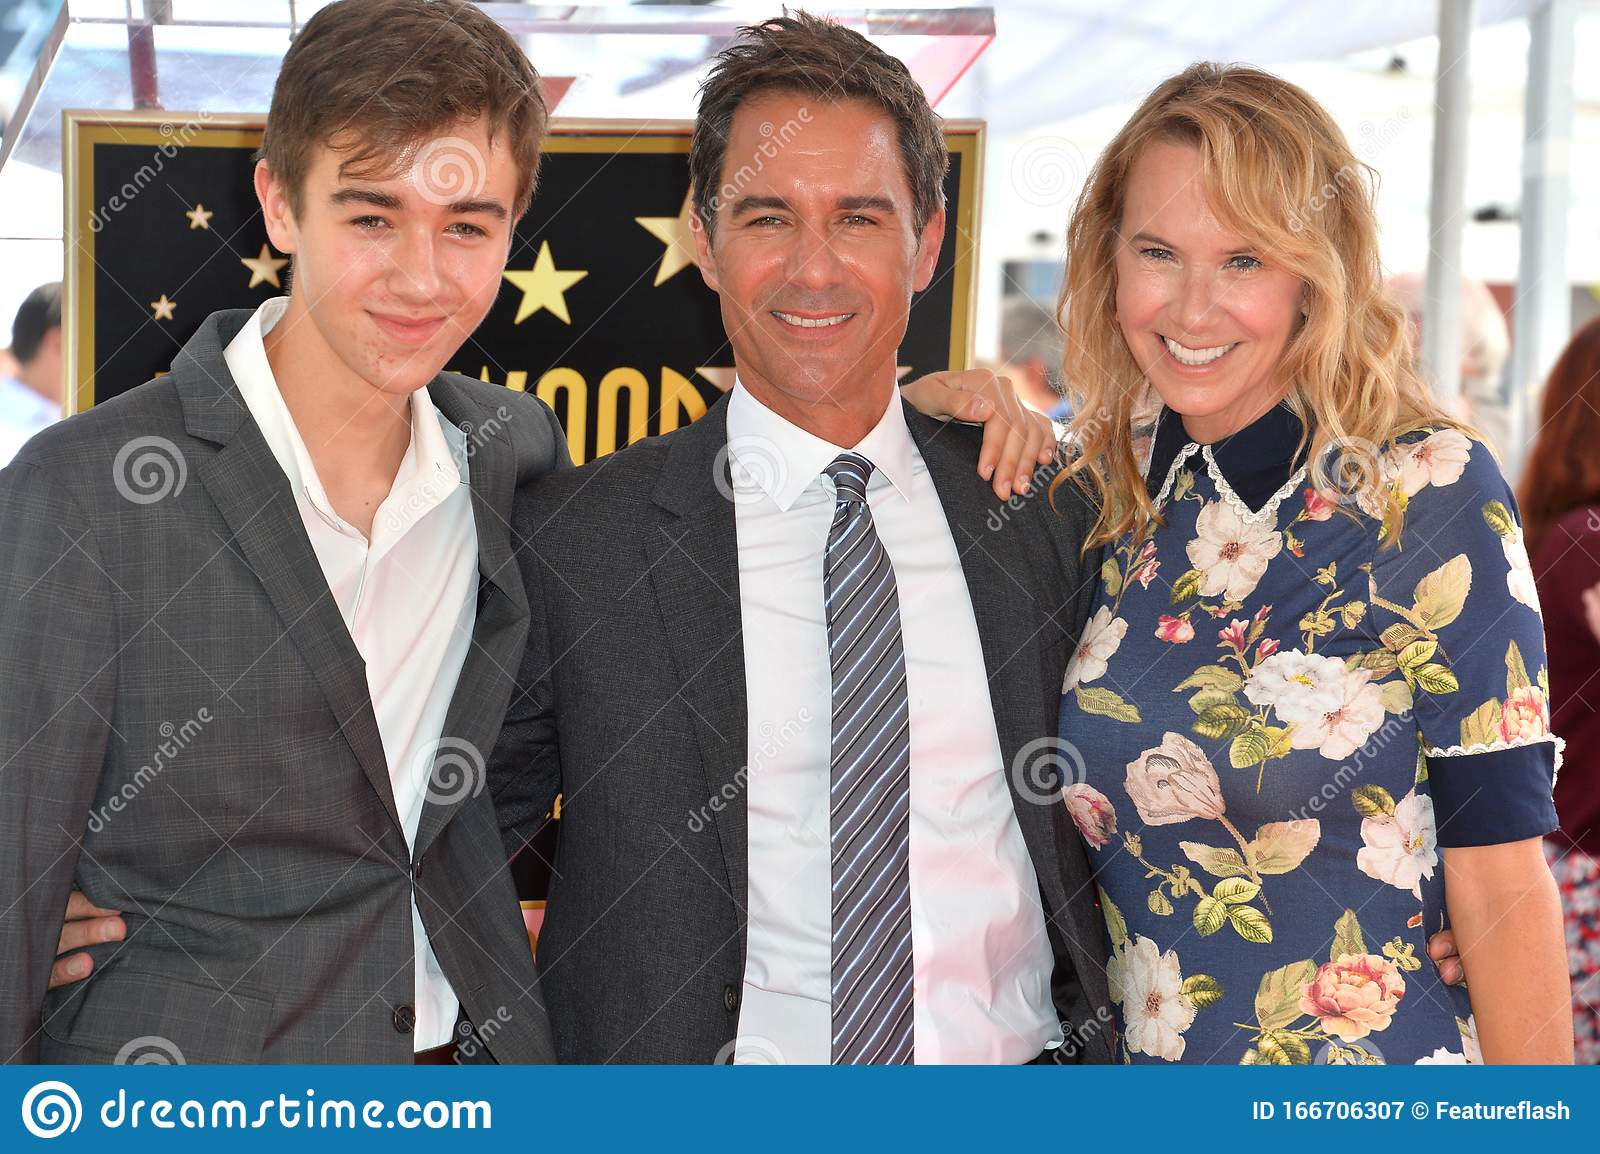 Eric Mccormack Finnigan Mccormack Janet Holden Editorial Photography Image Of Grace Entertainment 166706307 Help us build our profile of janet holden! https www dreamstime com eric mccormack finnigan mccormack janet holden los angeles ca september eric mccormack finnigan mccormack janet holden image166706307